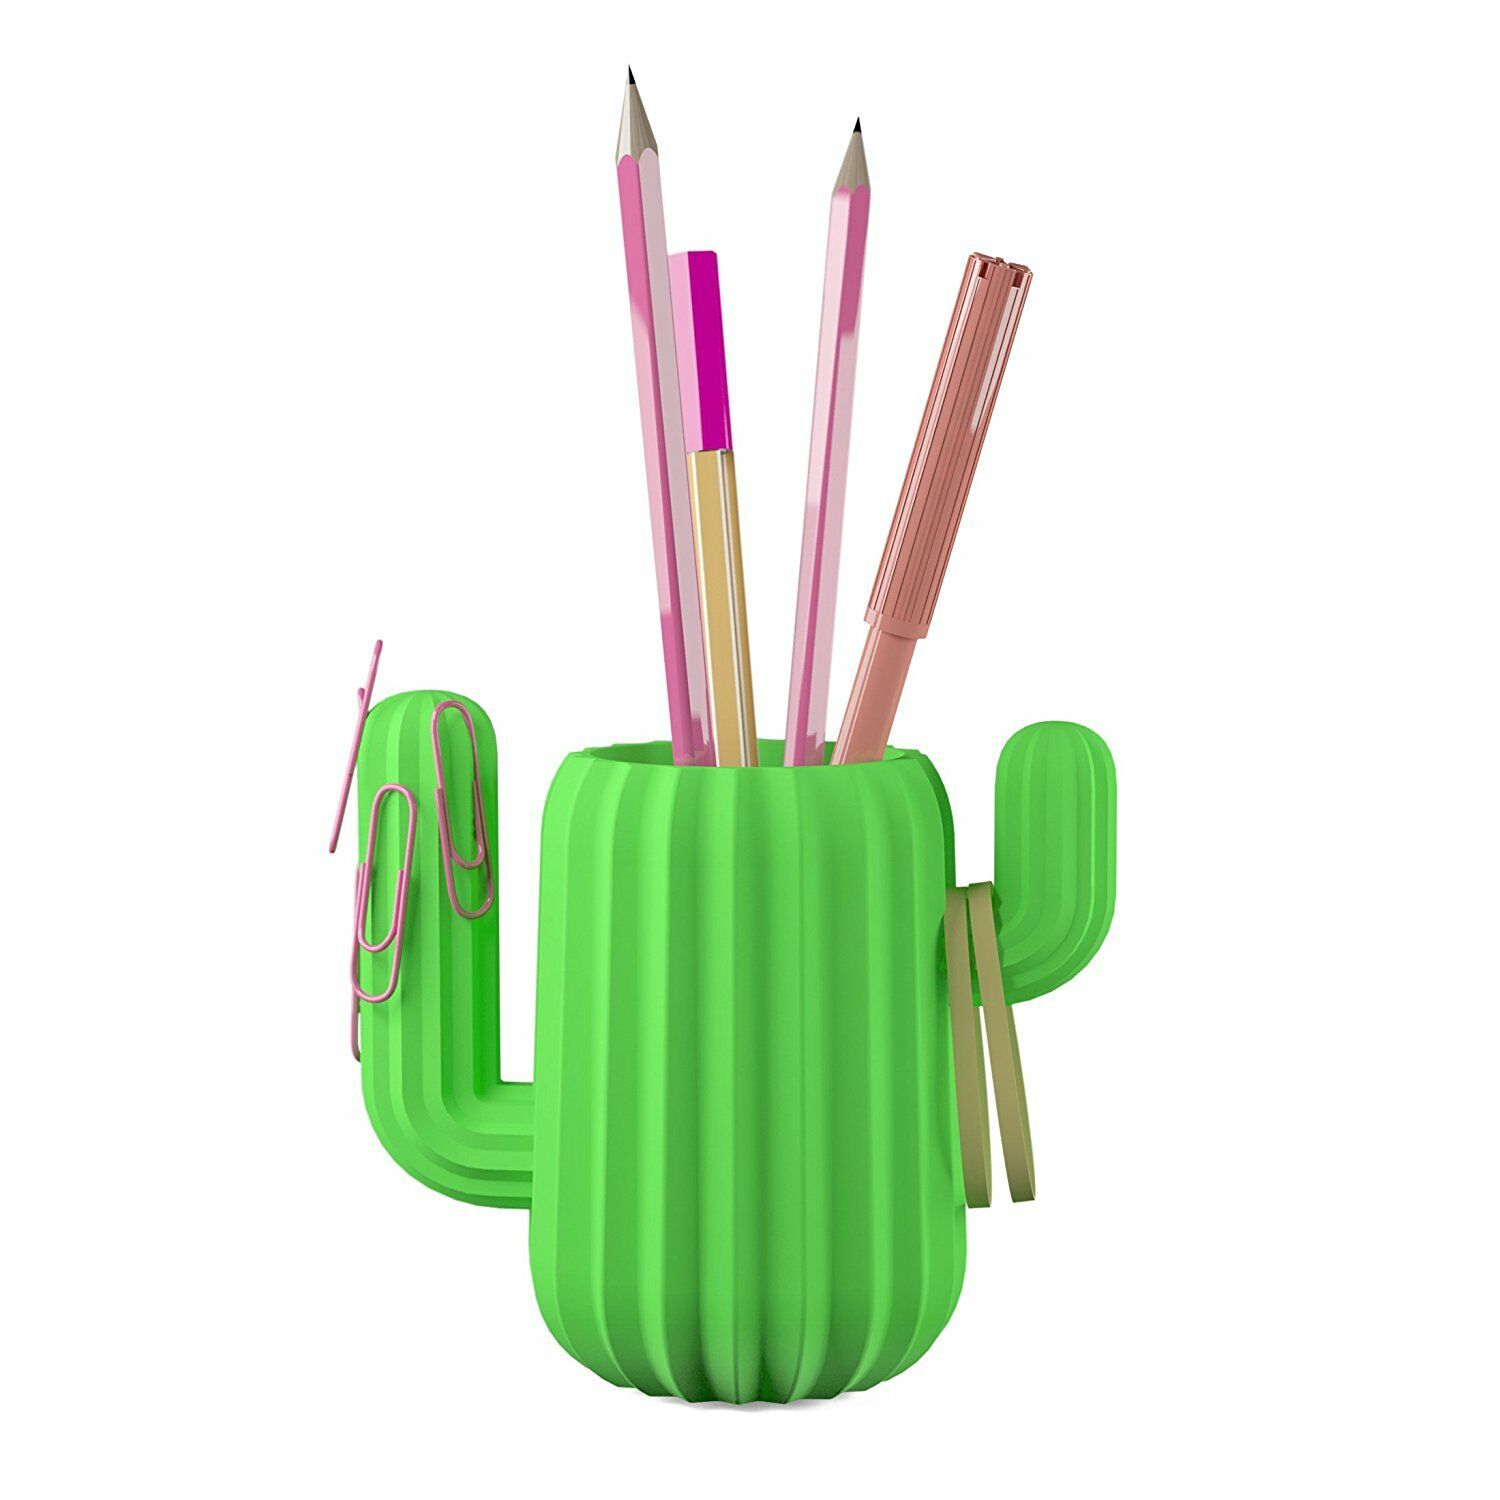 Mustard Green Cactus Pen Holder Magnetic Desktop Organizer Desk Office Pot 1 Of 2only 4 Available See More